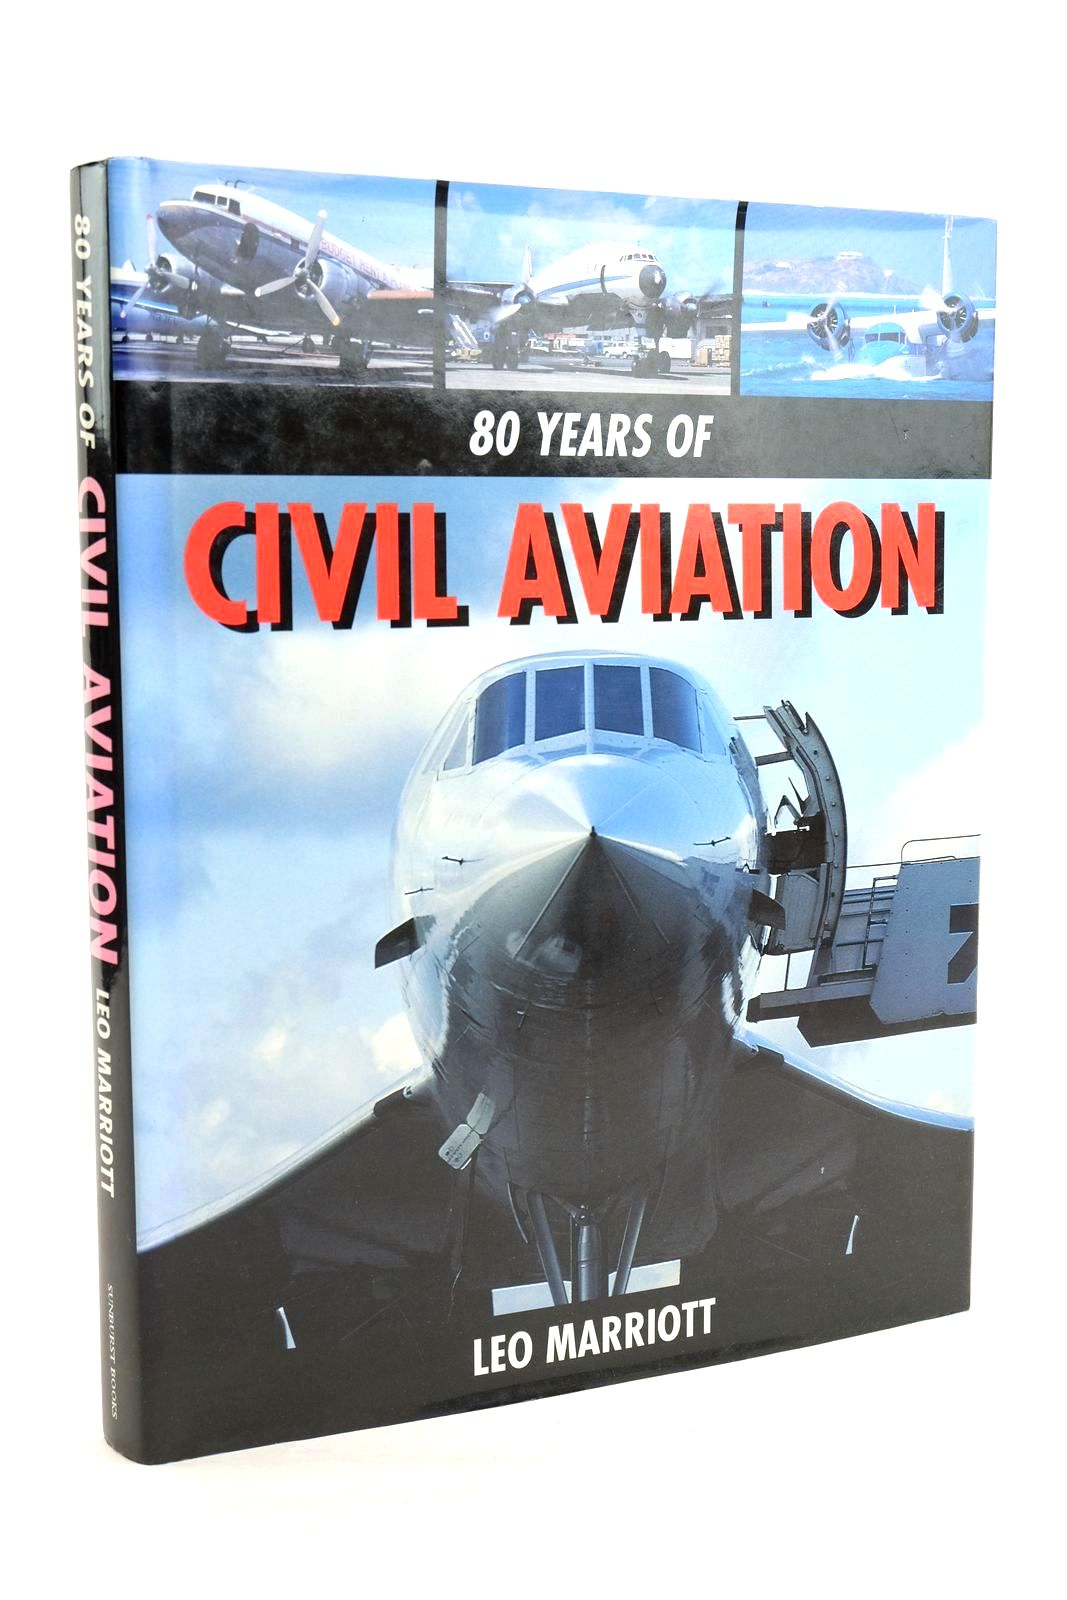 Photo of 80 YEARS OF CIVIL AVIATION written by Marriott, Leo published by Sunburst Books (STOCK CODE: 1320139)  for sale by Stella & Rose's Books